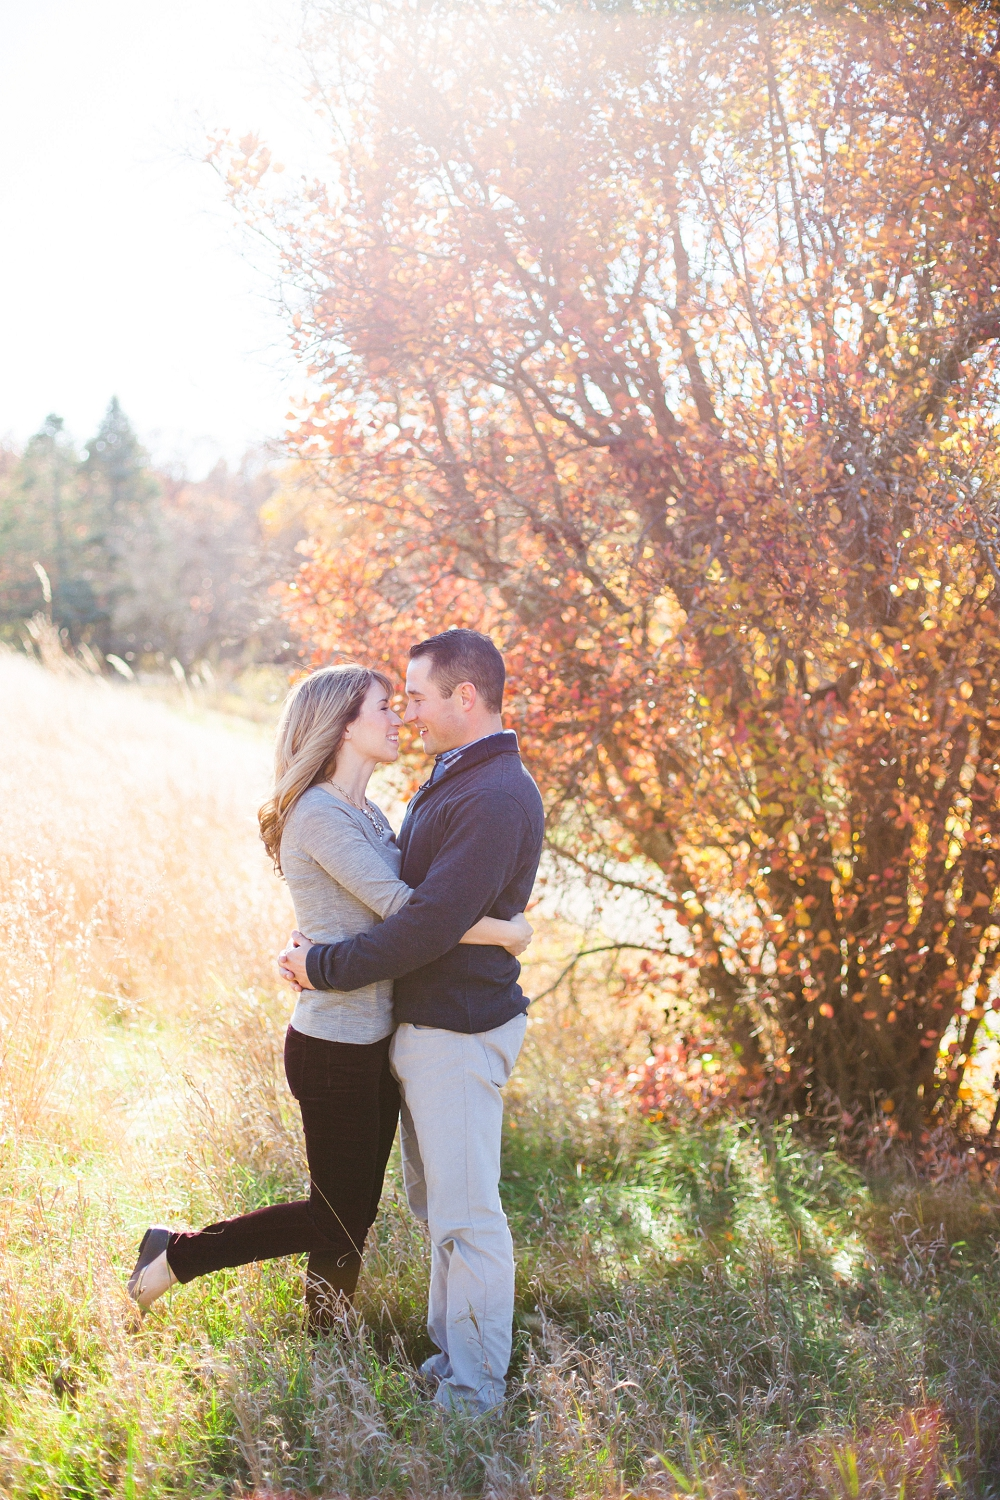 Rochelle Louise Photography, Wisconsin wedding photographer, Wisconsin engagement session, Milwaukee engagement session, Minnesota wedding photographer, fine art wedding photography